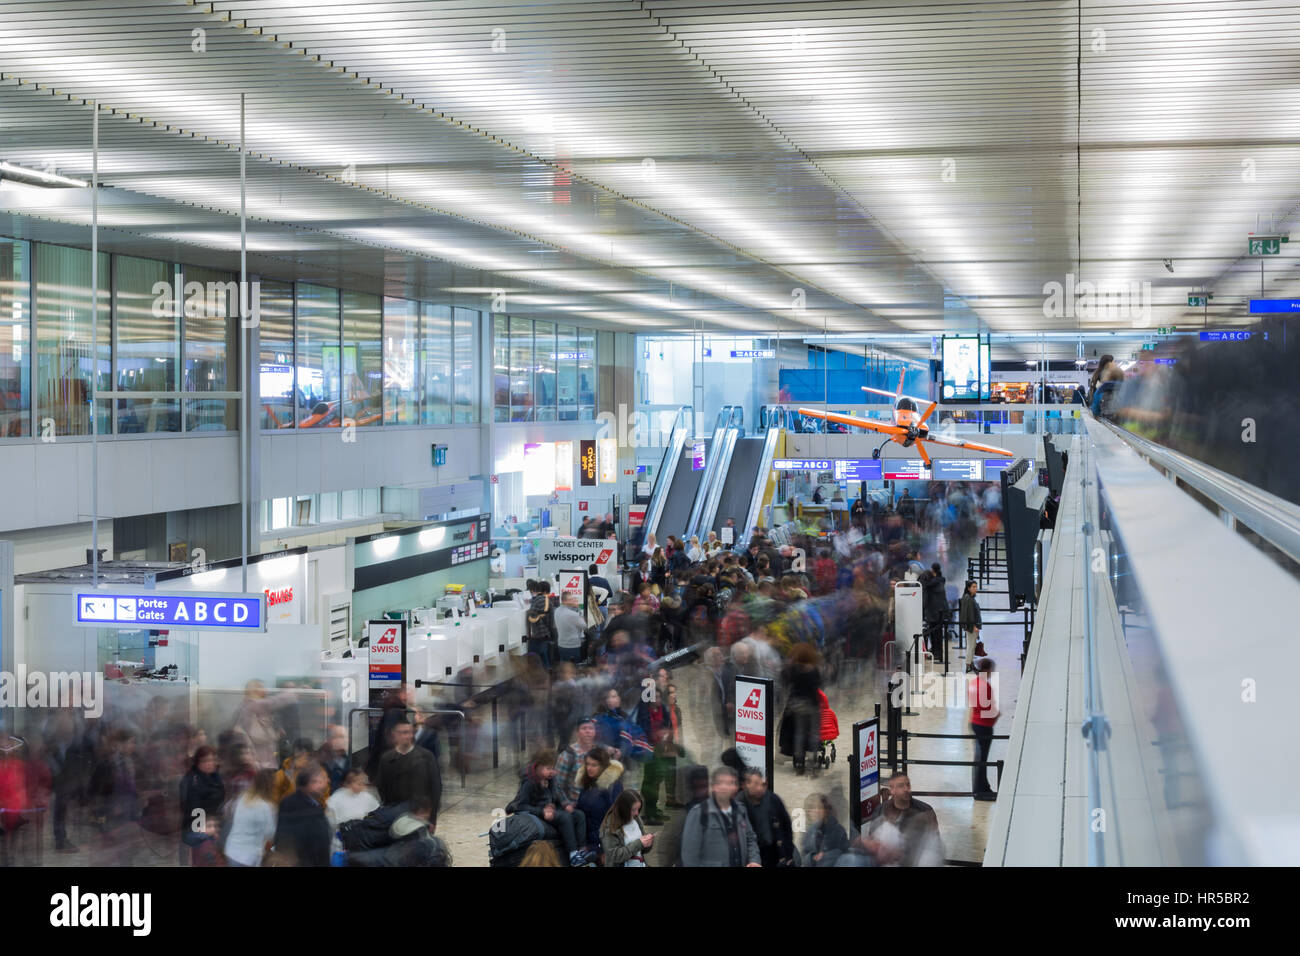 One of the halls of Cointrin airport in Geneva, Switzerland. This airport is international and passengers can fly - Stock Image